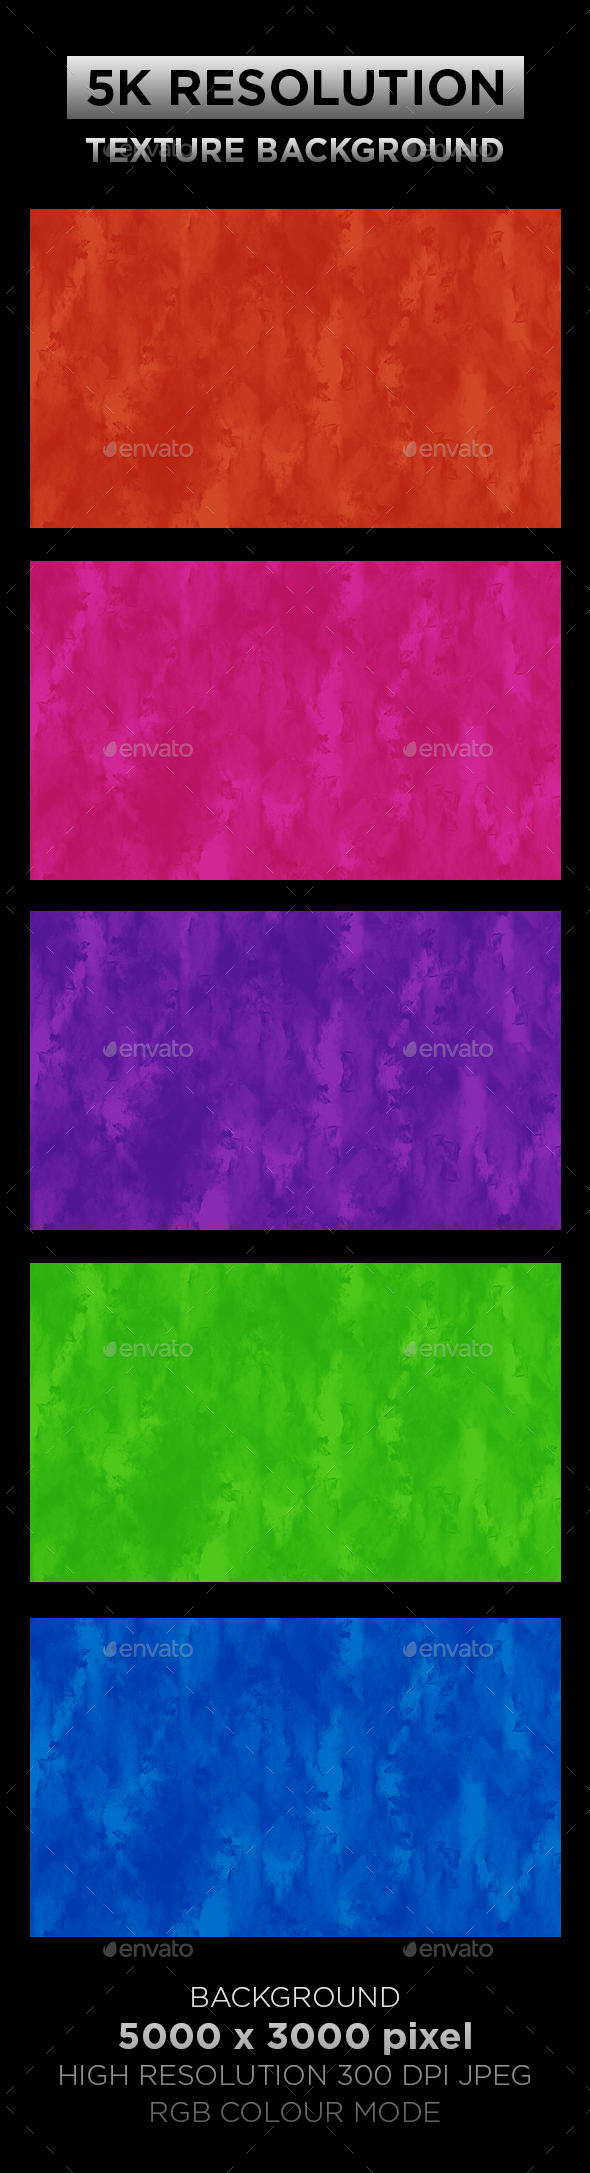 Texture Background Set 005 - Backgrounds Graphics